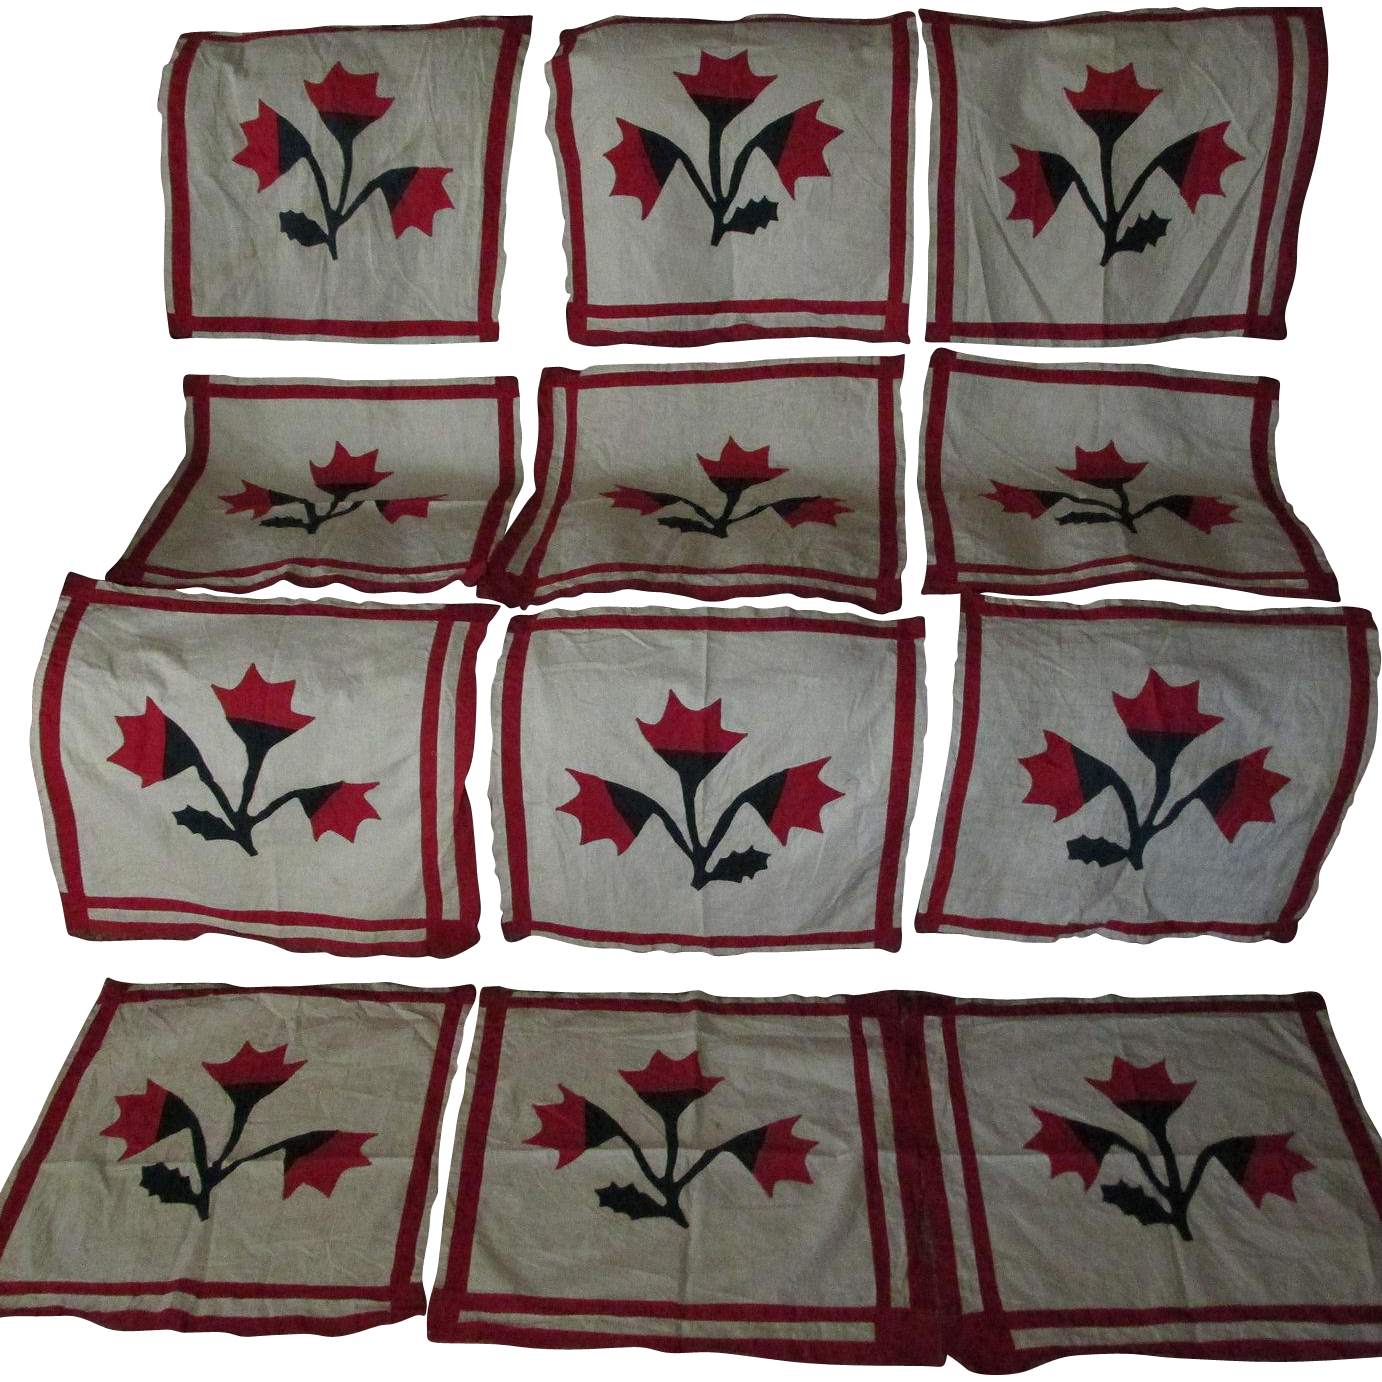 19thC Hand Sewn Applique Quilt Squares from neatcurios on Ruby Lane